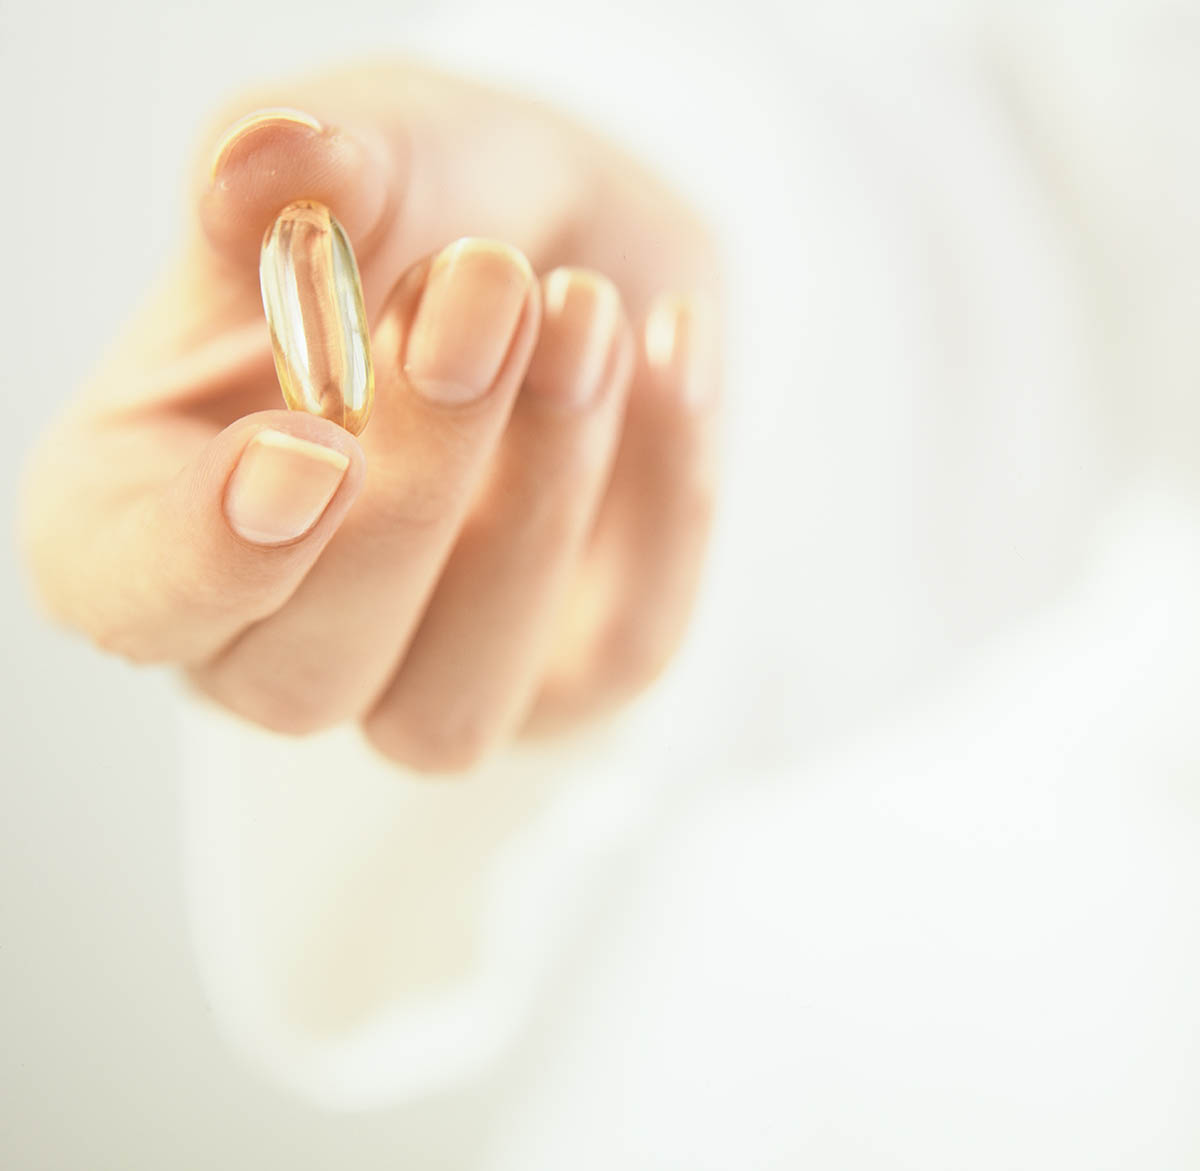 Free stock photo Woman's hand holding a vitamin pill